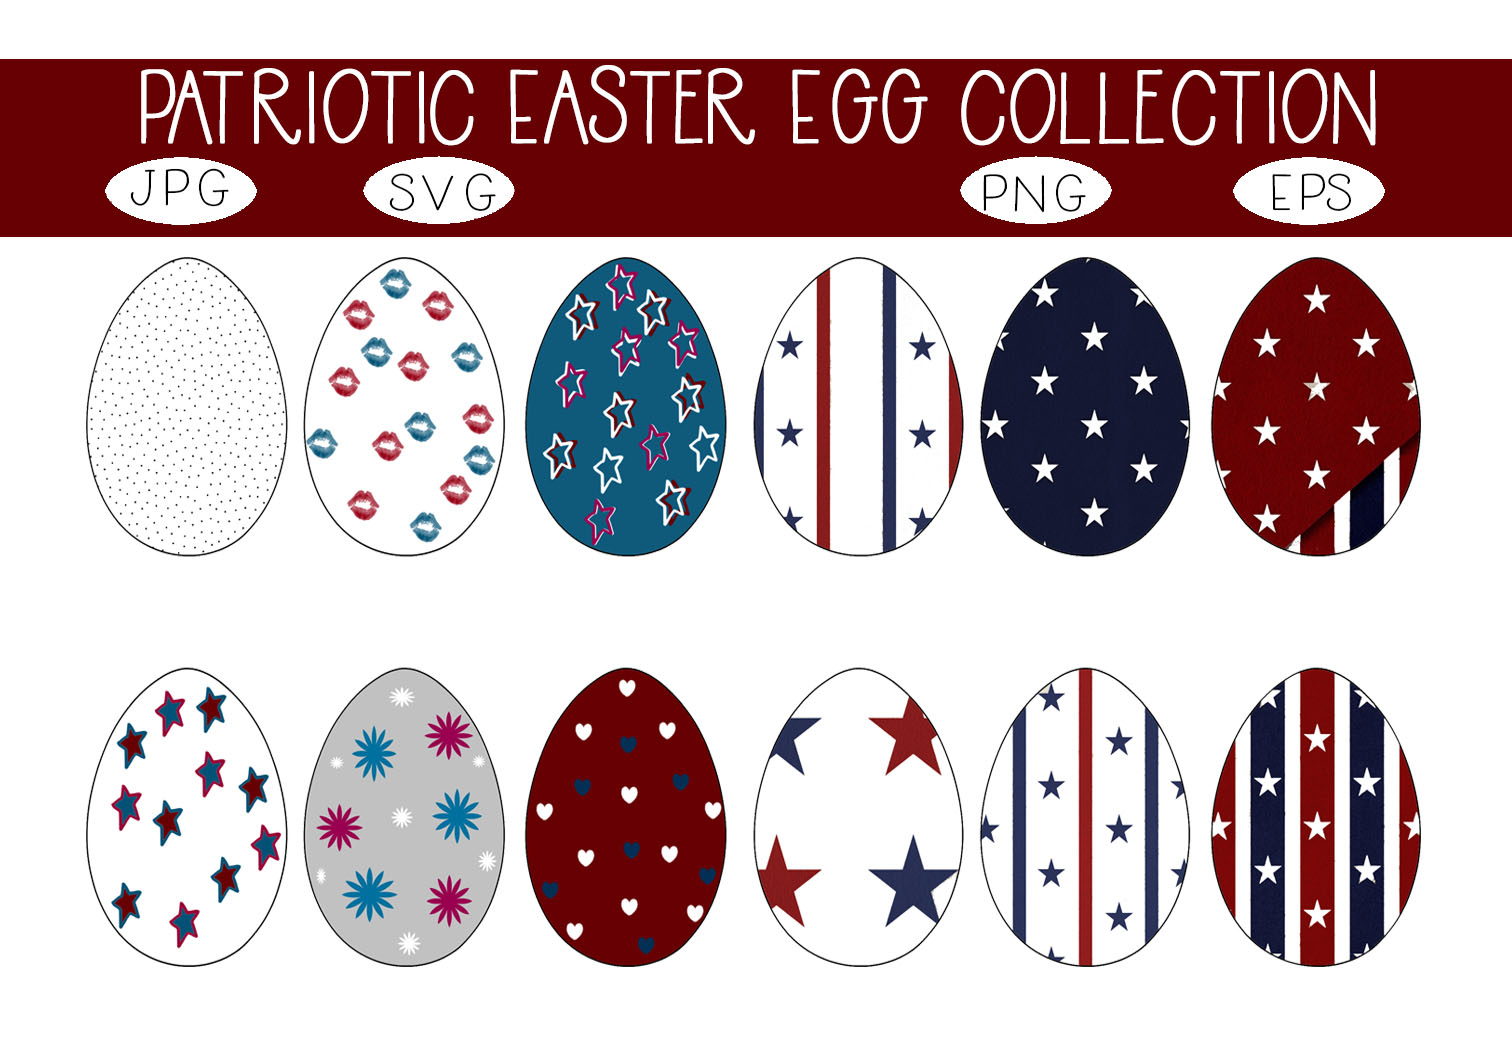 Download Free Patriotic Easter Egg Collection Graphic By Capeairforce for Cricut Explore, Silhouette and other cutting machines.